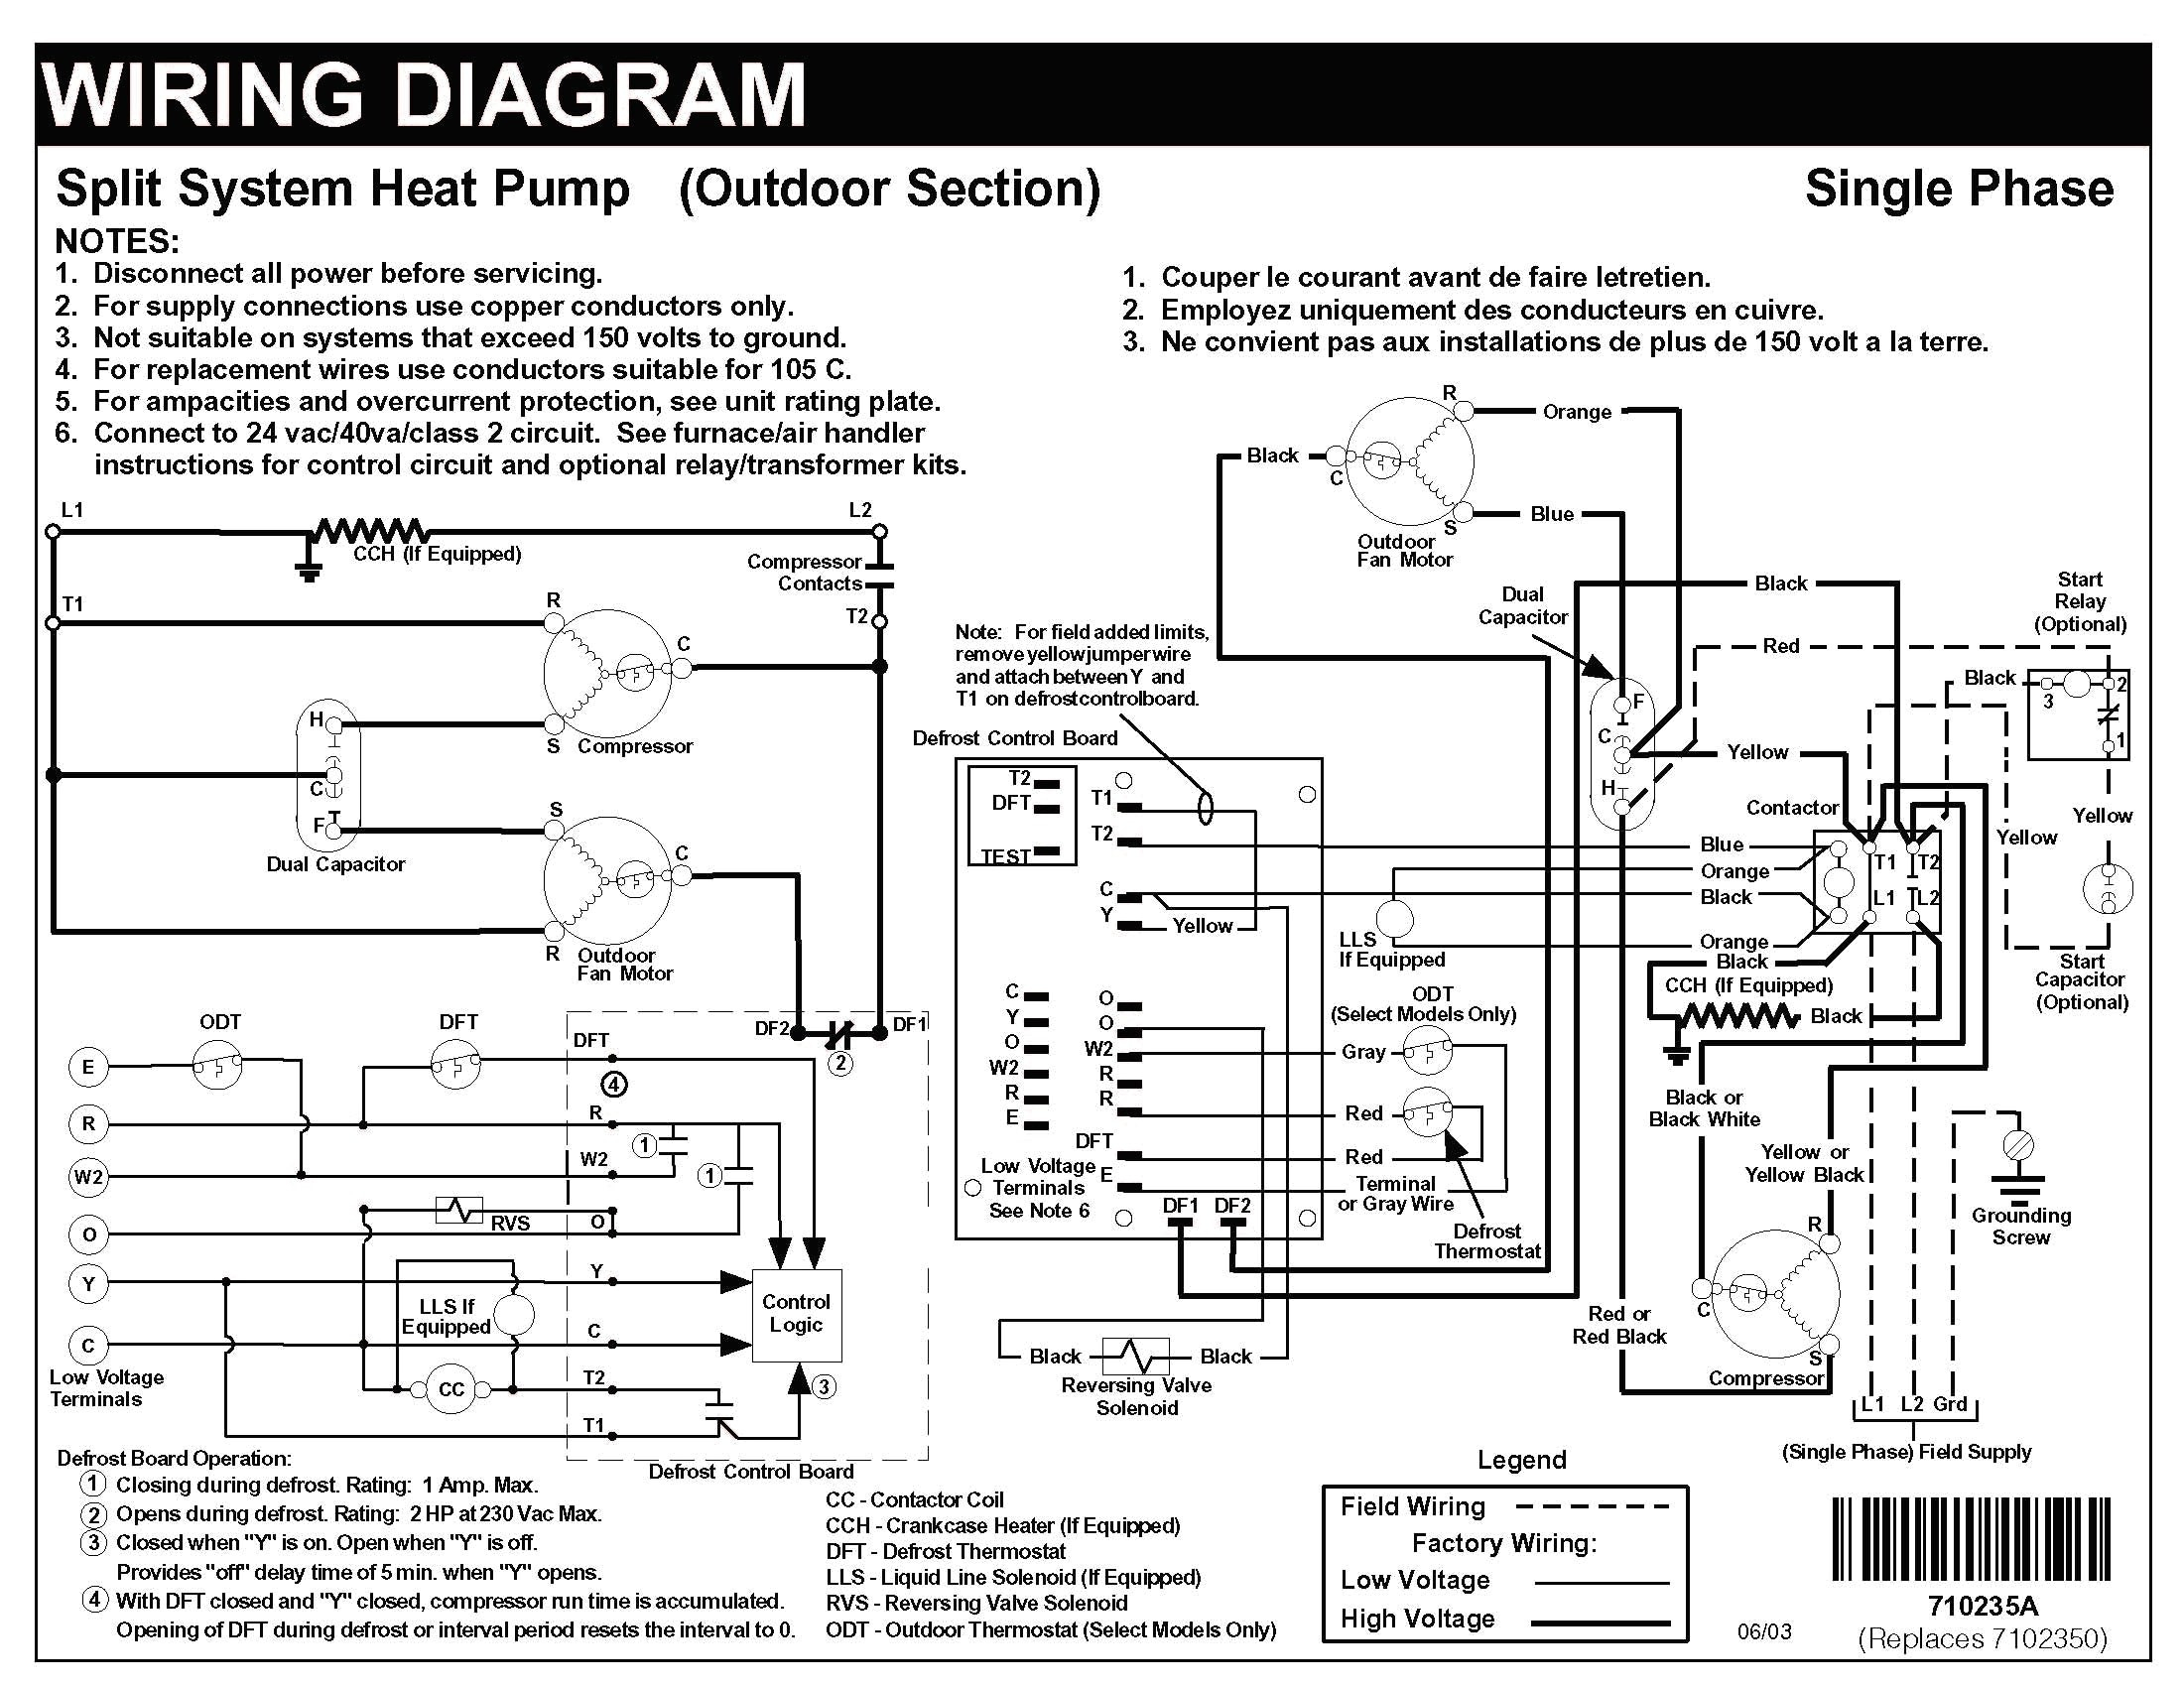 carrier heat pump wiring diagram Download-Nest Thermostat Wiring Diagram Heat Pump Elegant Famous Carrier Heat Pump Wiring Diagram Gallery Electrical Nest Thermostat Wiring Diagram Heat Pump In 7-k